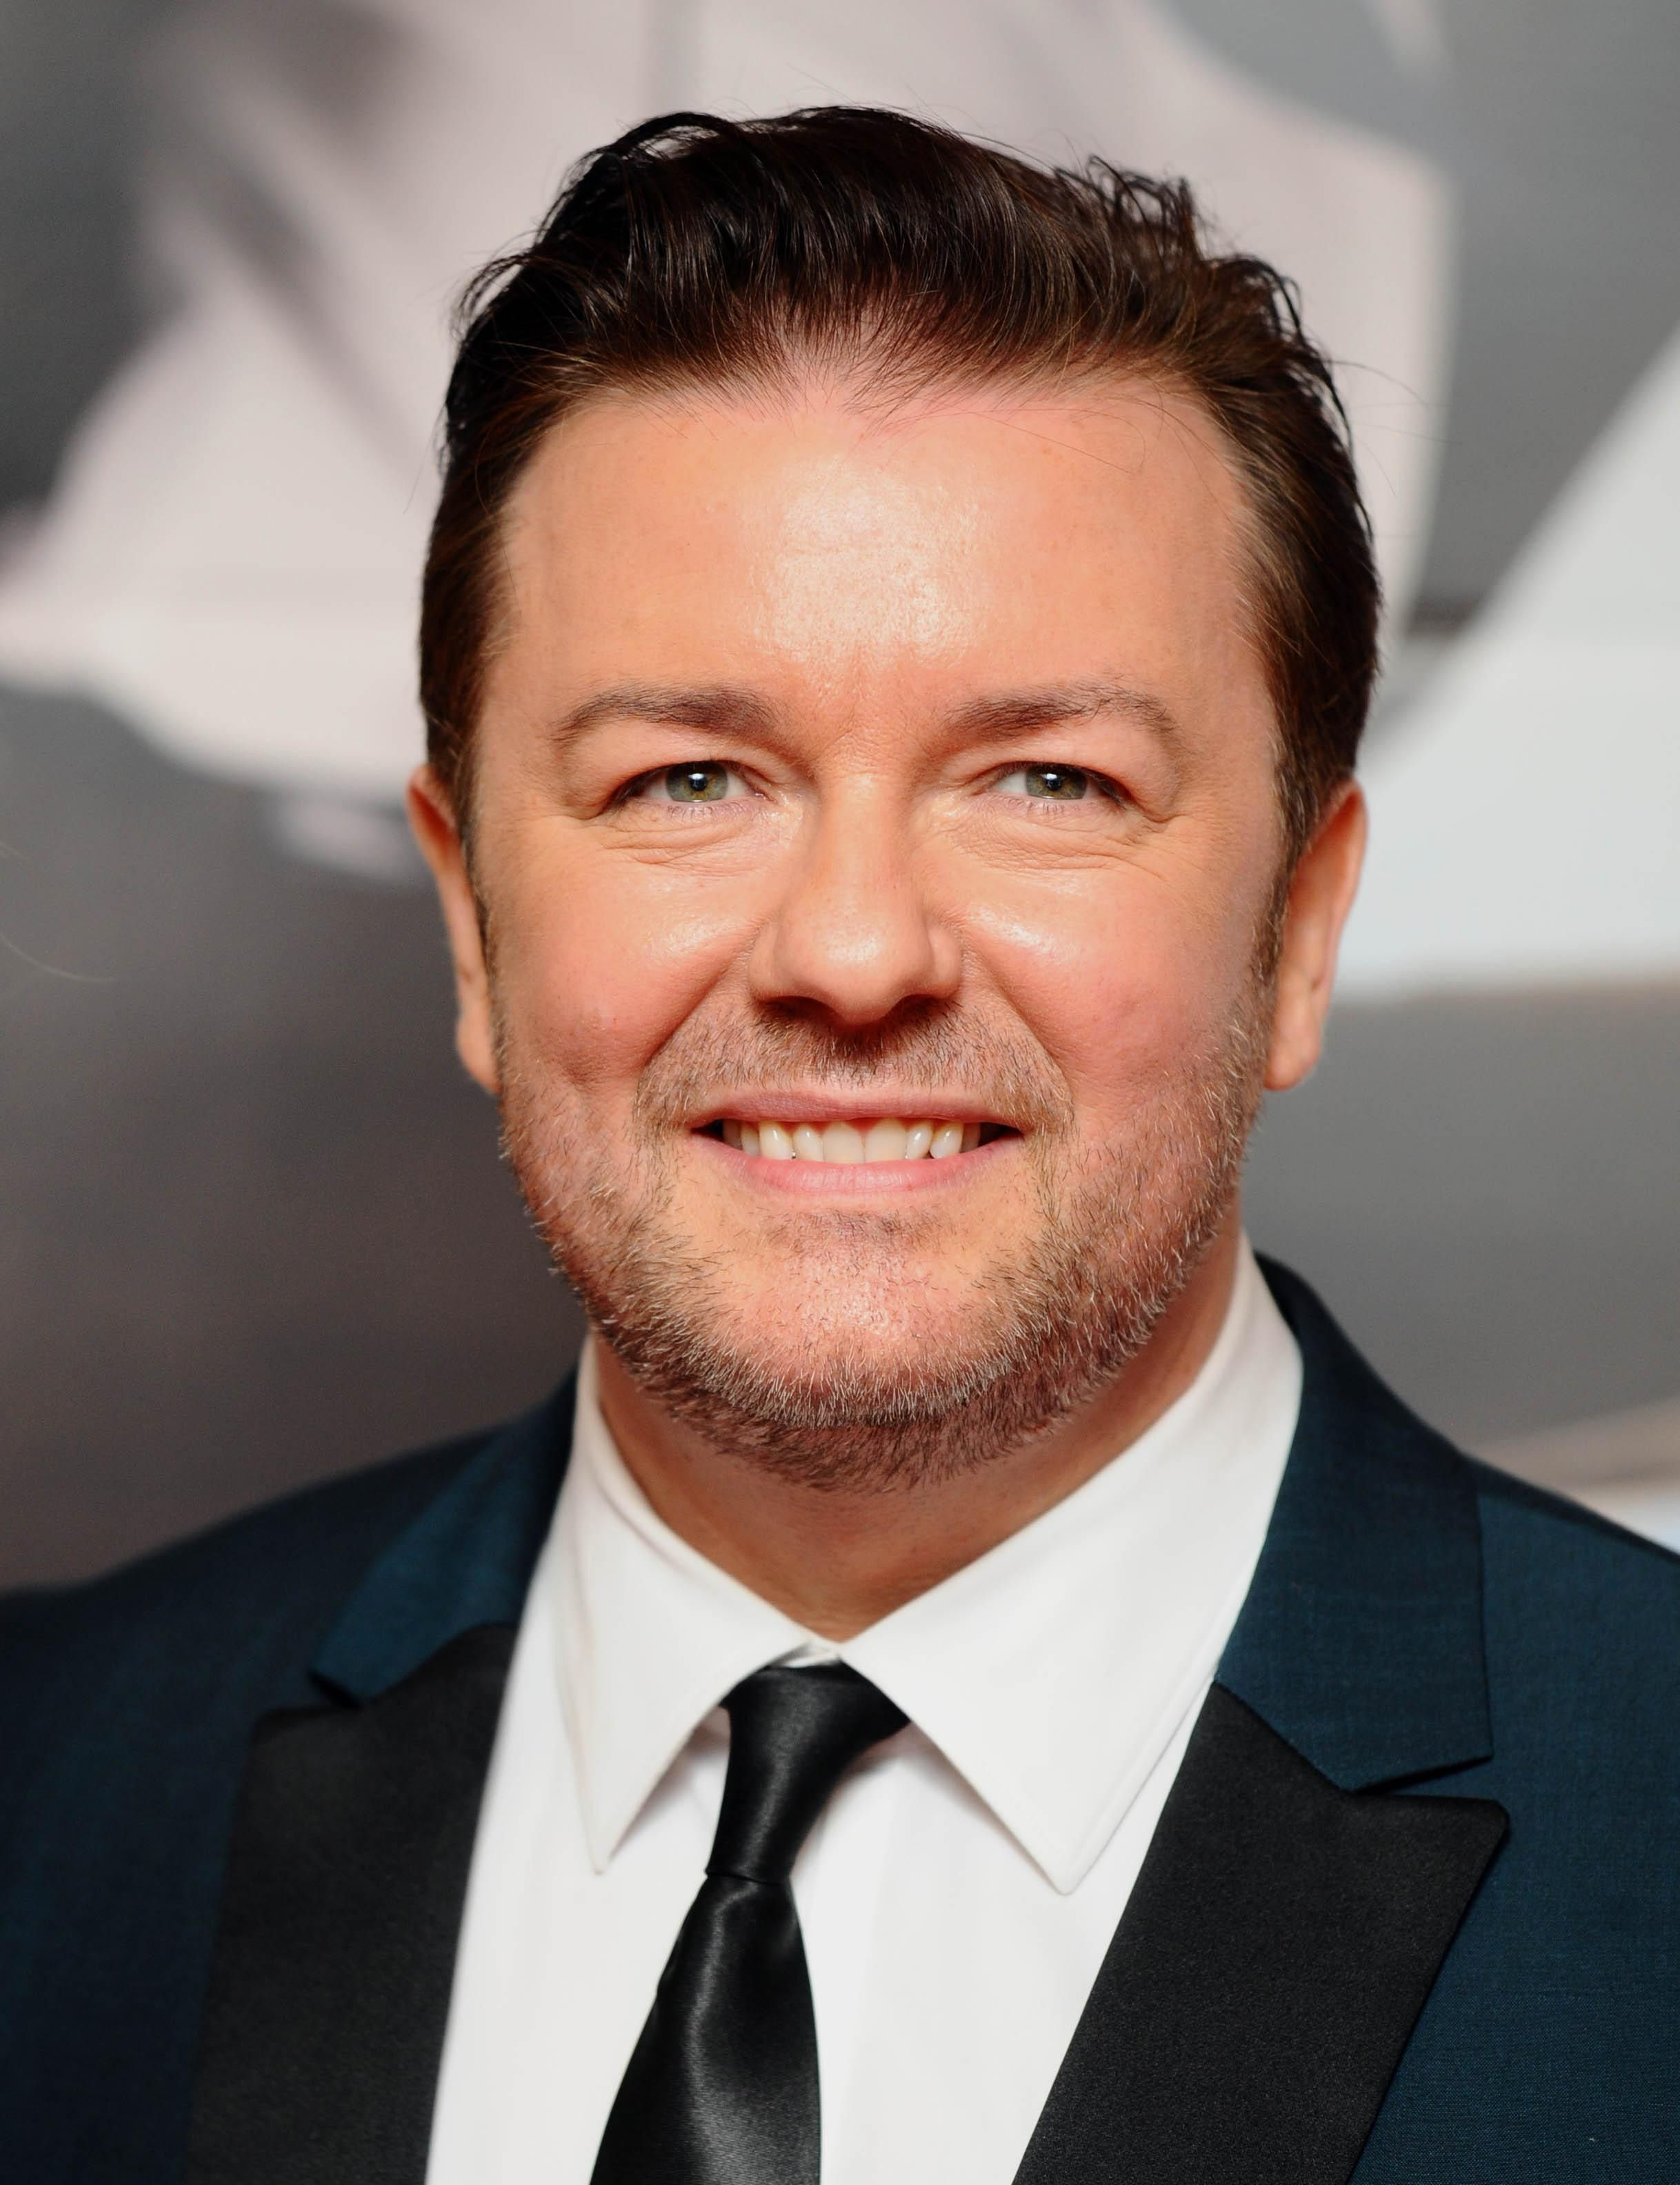 Best Comedians 2019 Ricky Gervais   one of world's best comedians   Cinema & TV in